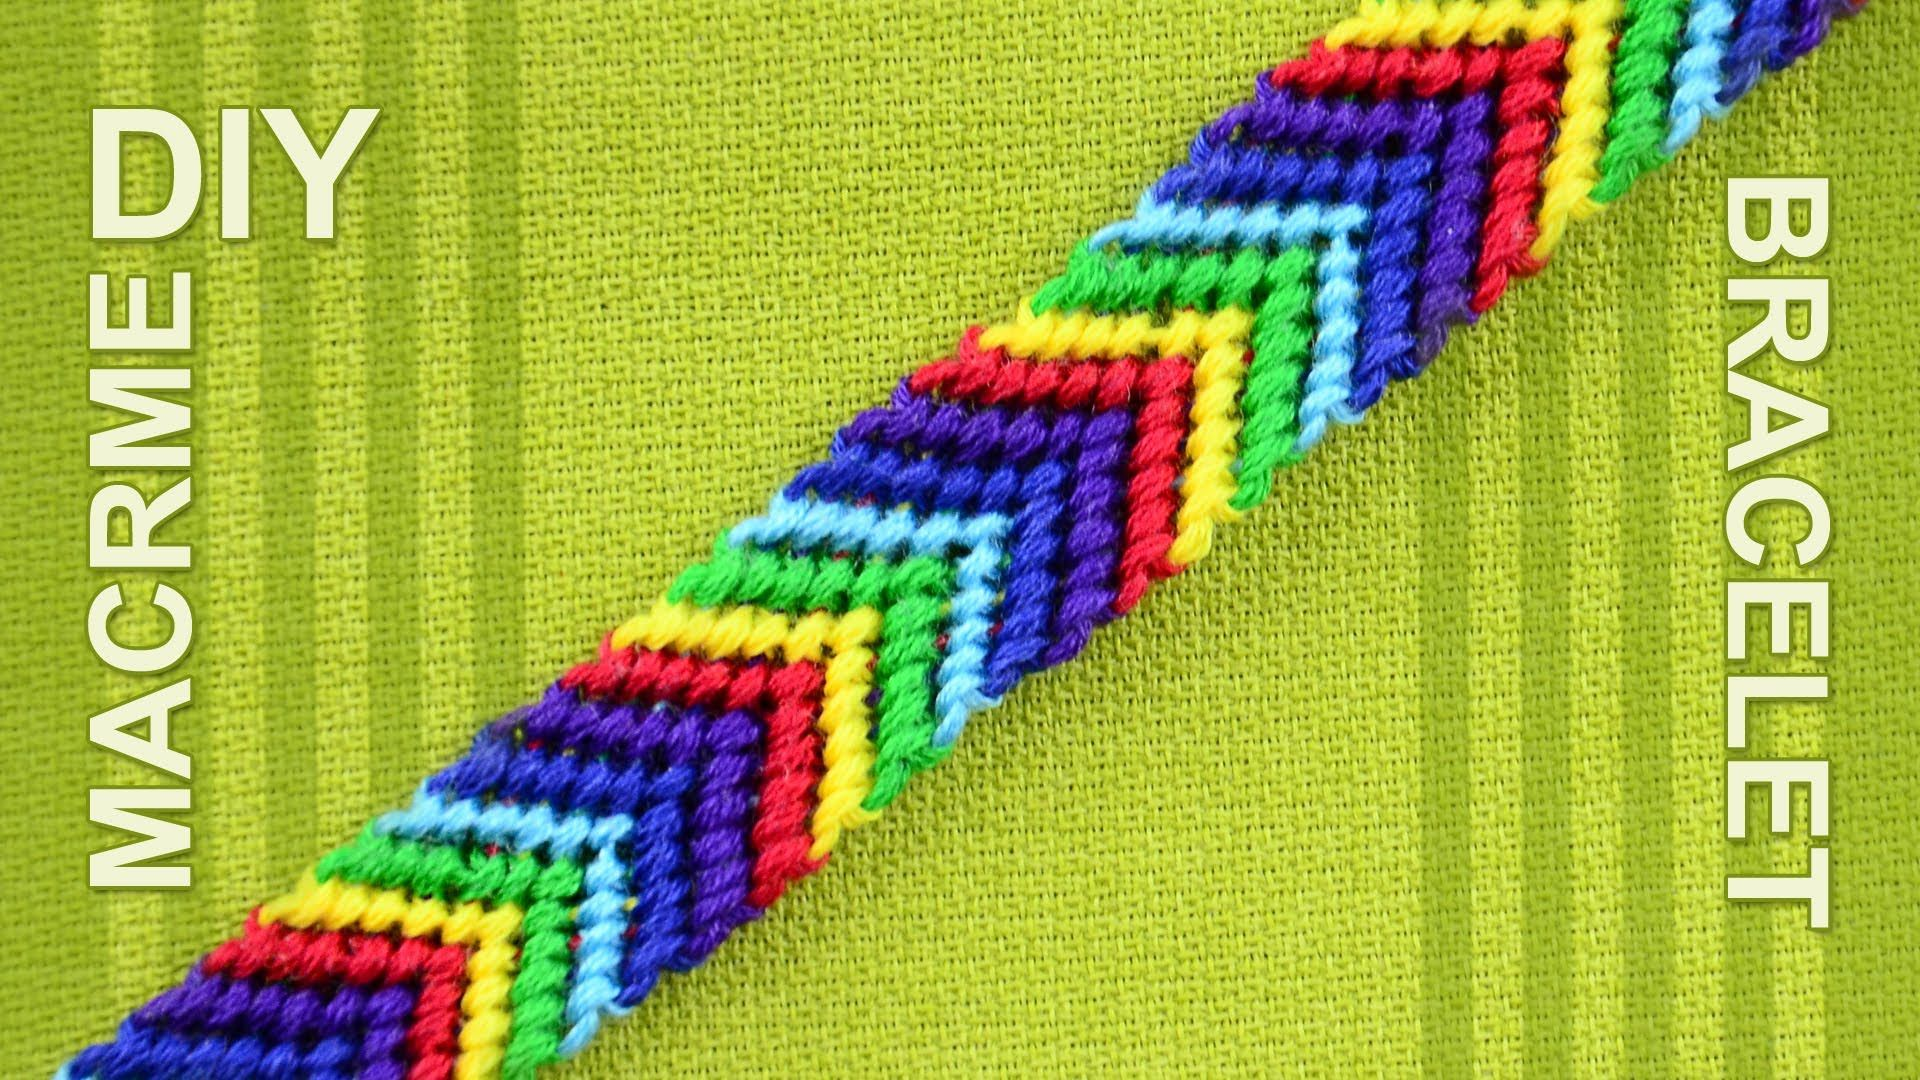 How To Make A Macrame Arrow Design Friendship Bracelet Called Chevron V Pattern